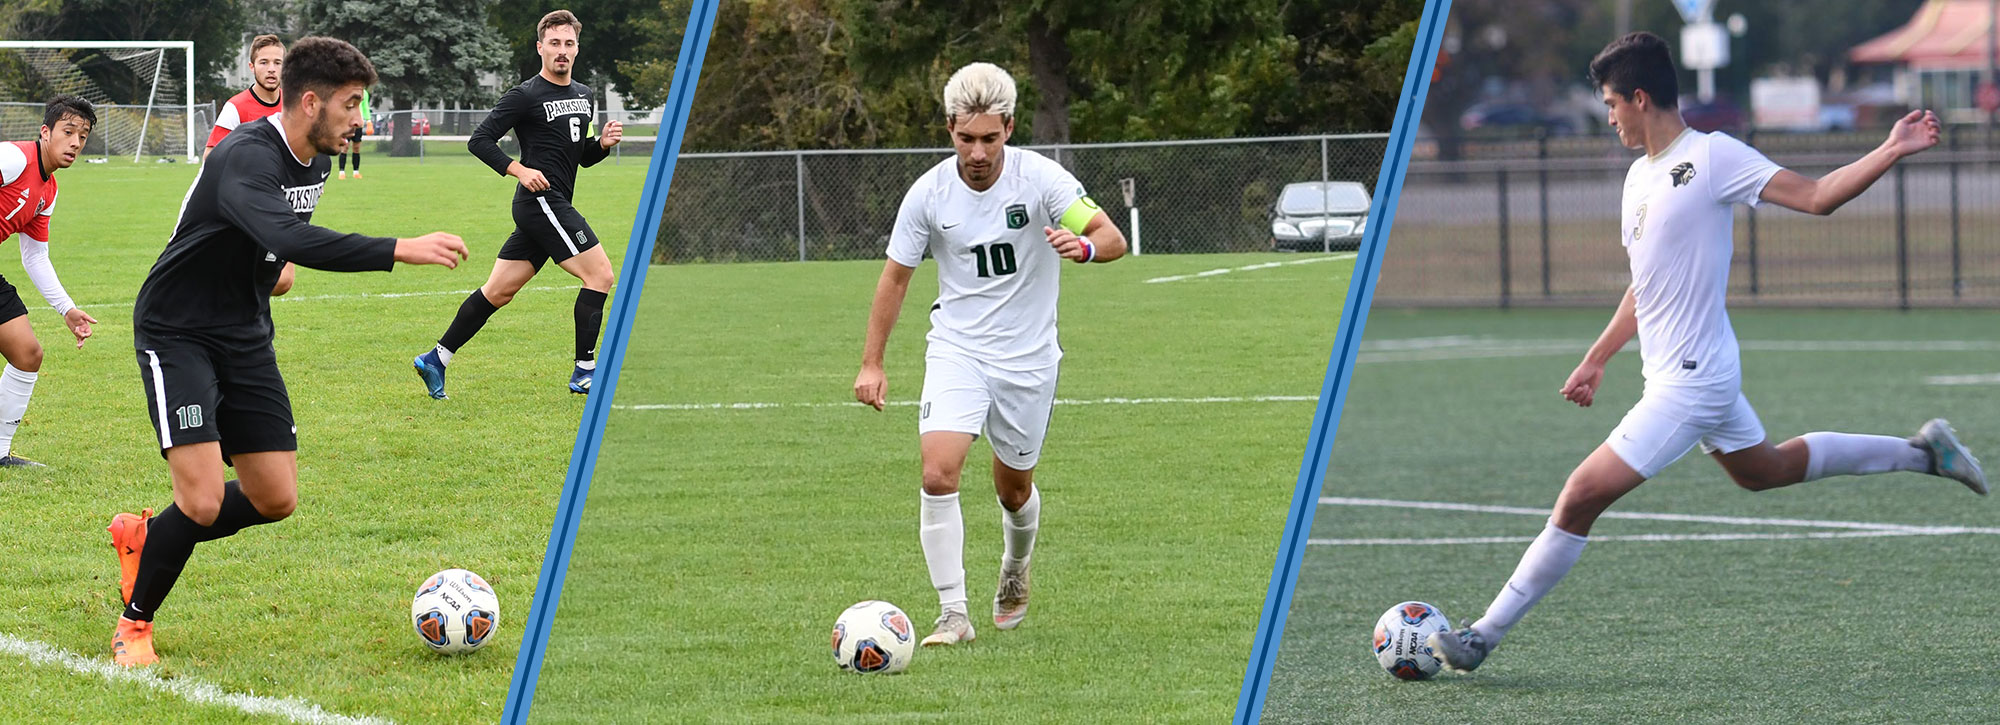 Parkside's Prpa & Krecak, Purdue Northwest's Ugarte Named Google Cloud Men's Soccer Academic All-District Selections